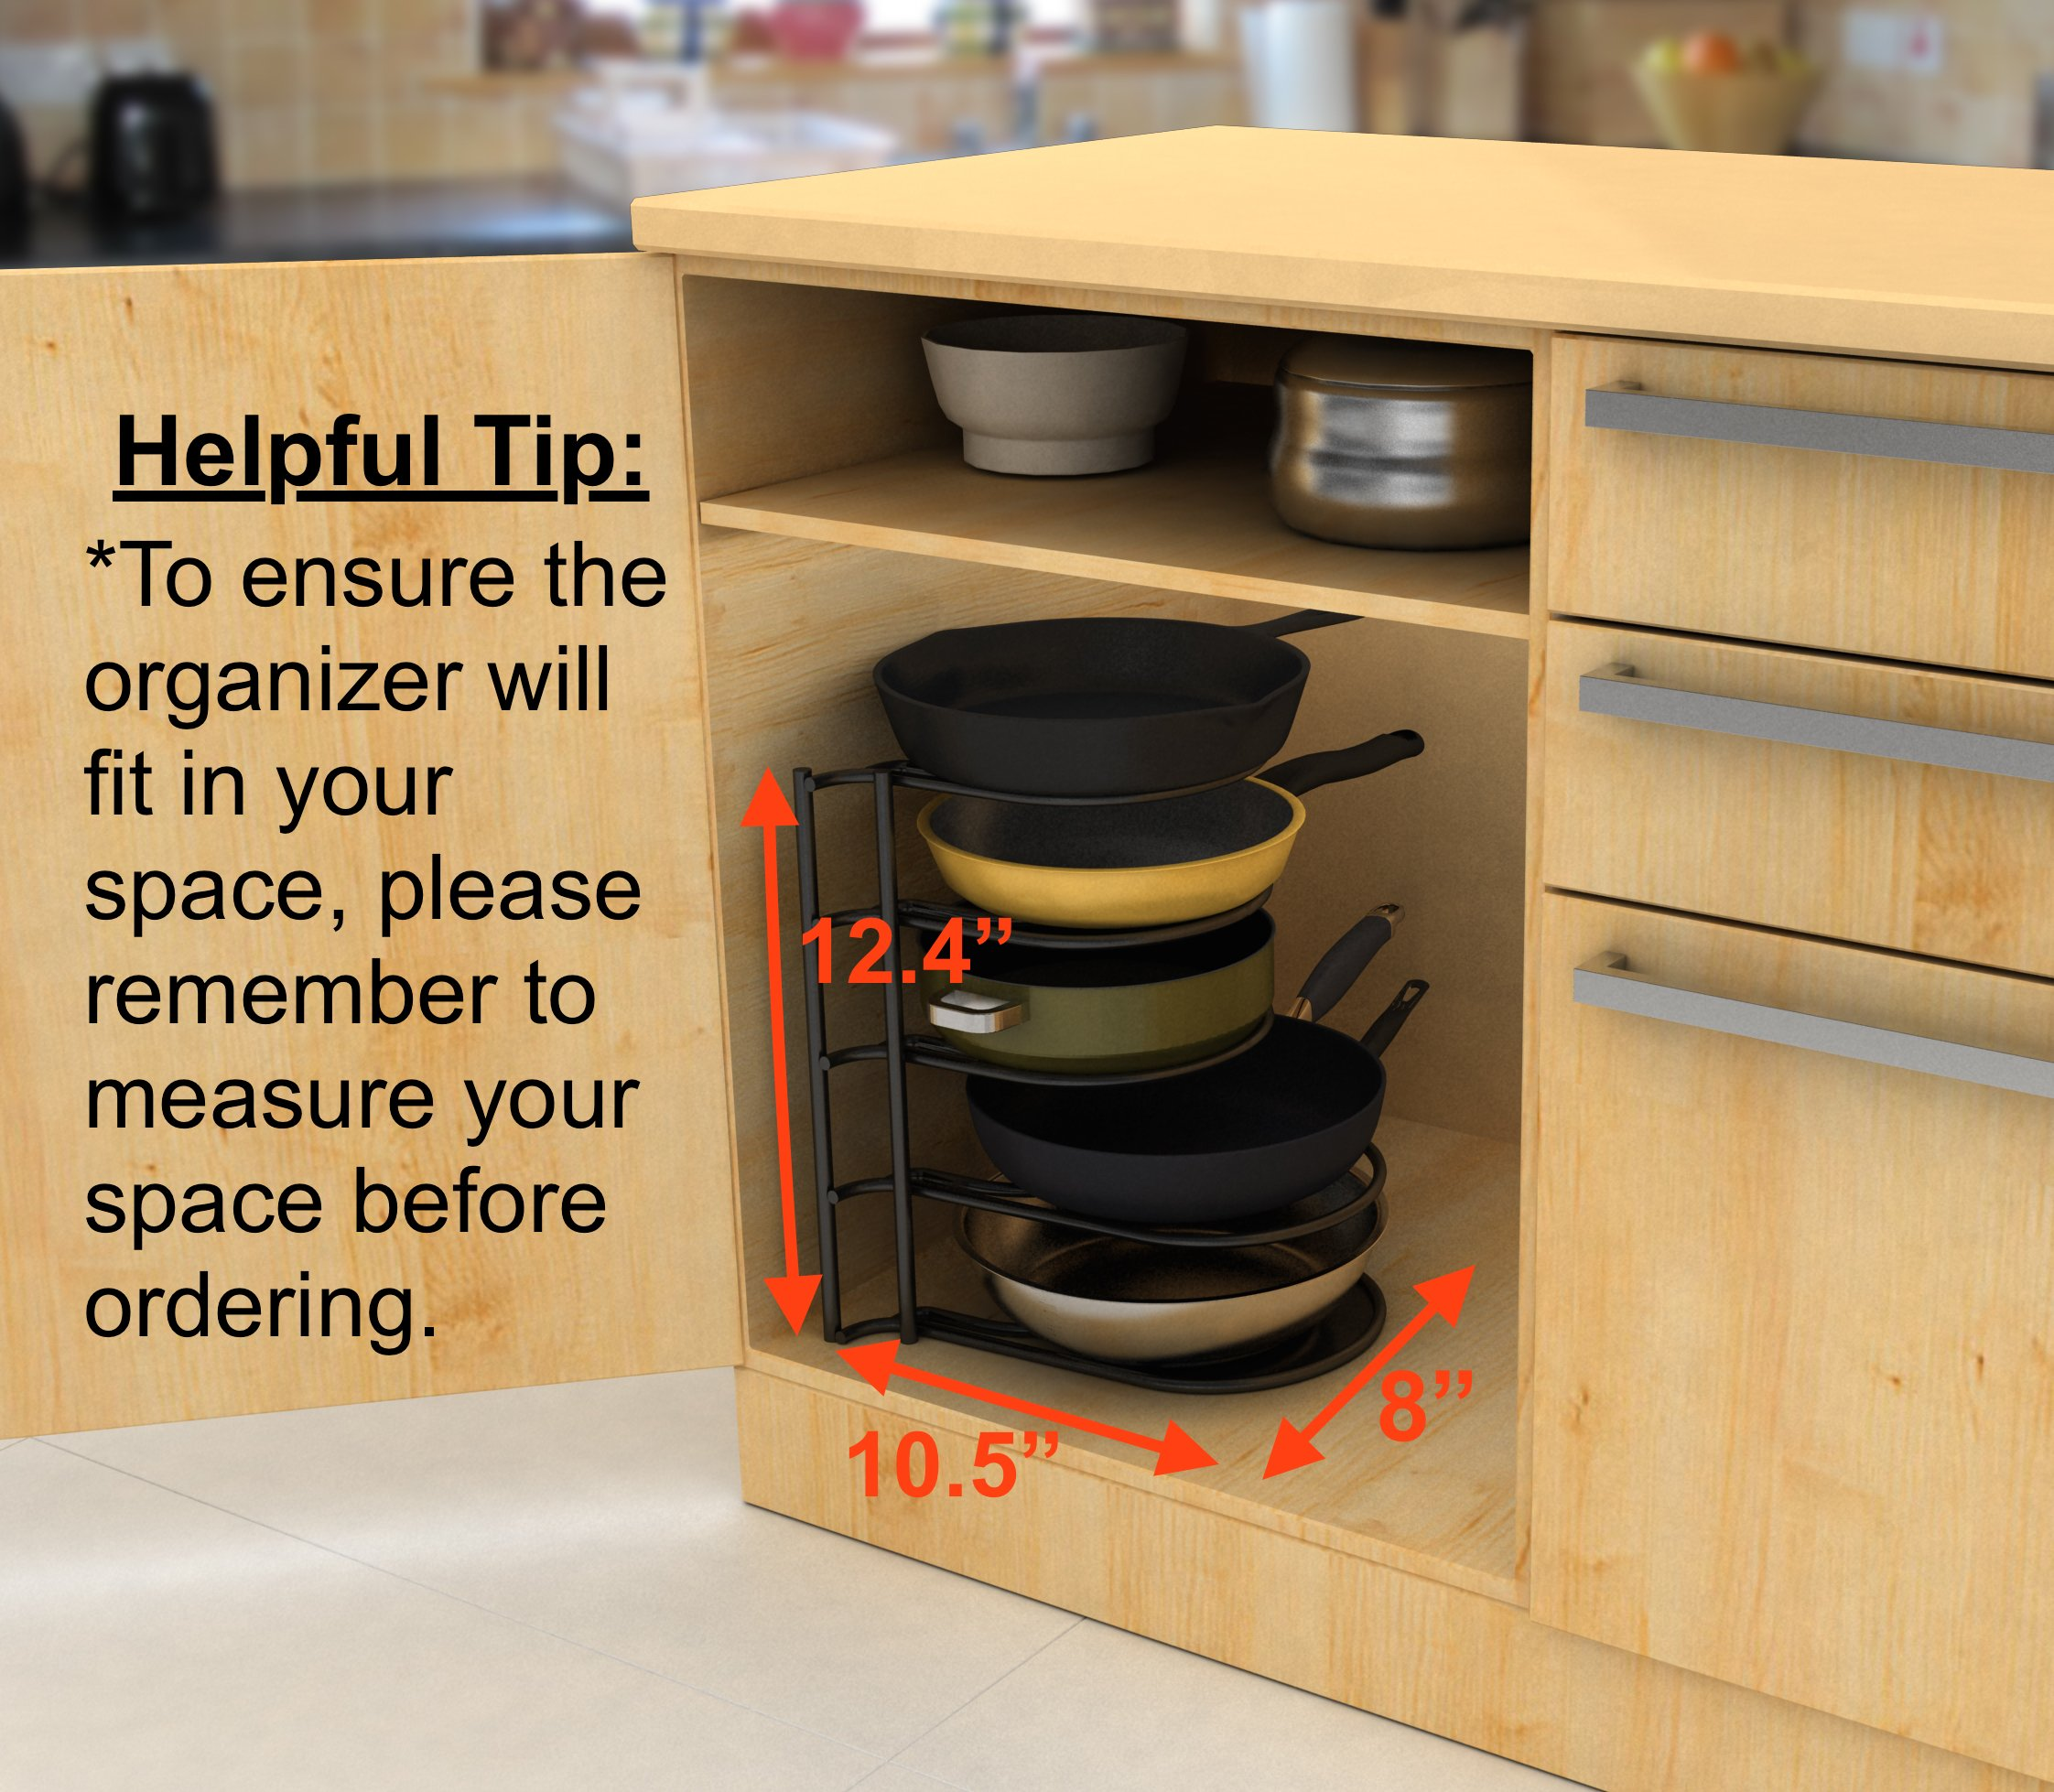 Extreme Matters Heavy Duty Pan Organizer - Bottom Tier 1 Inch Taller for Larger Pans - No Assembly Required - Black by Extreme Matters (Image #4)